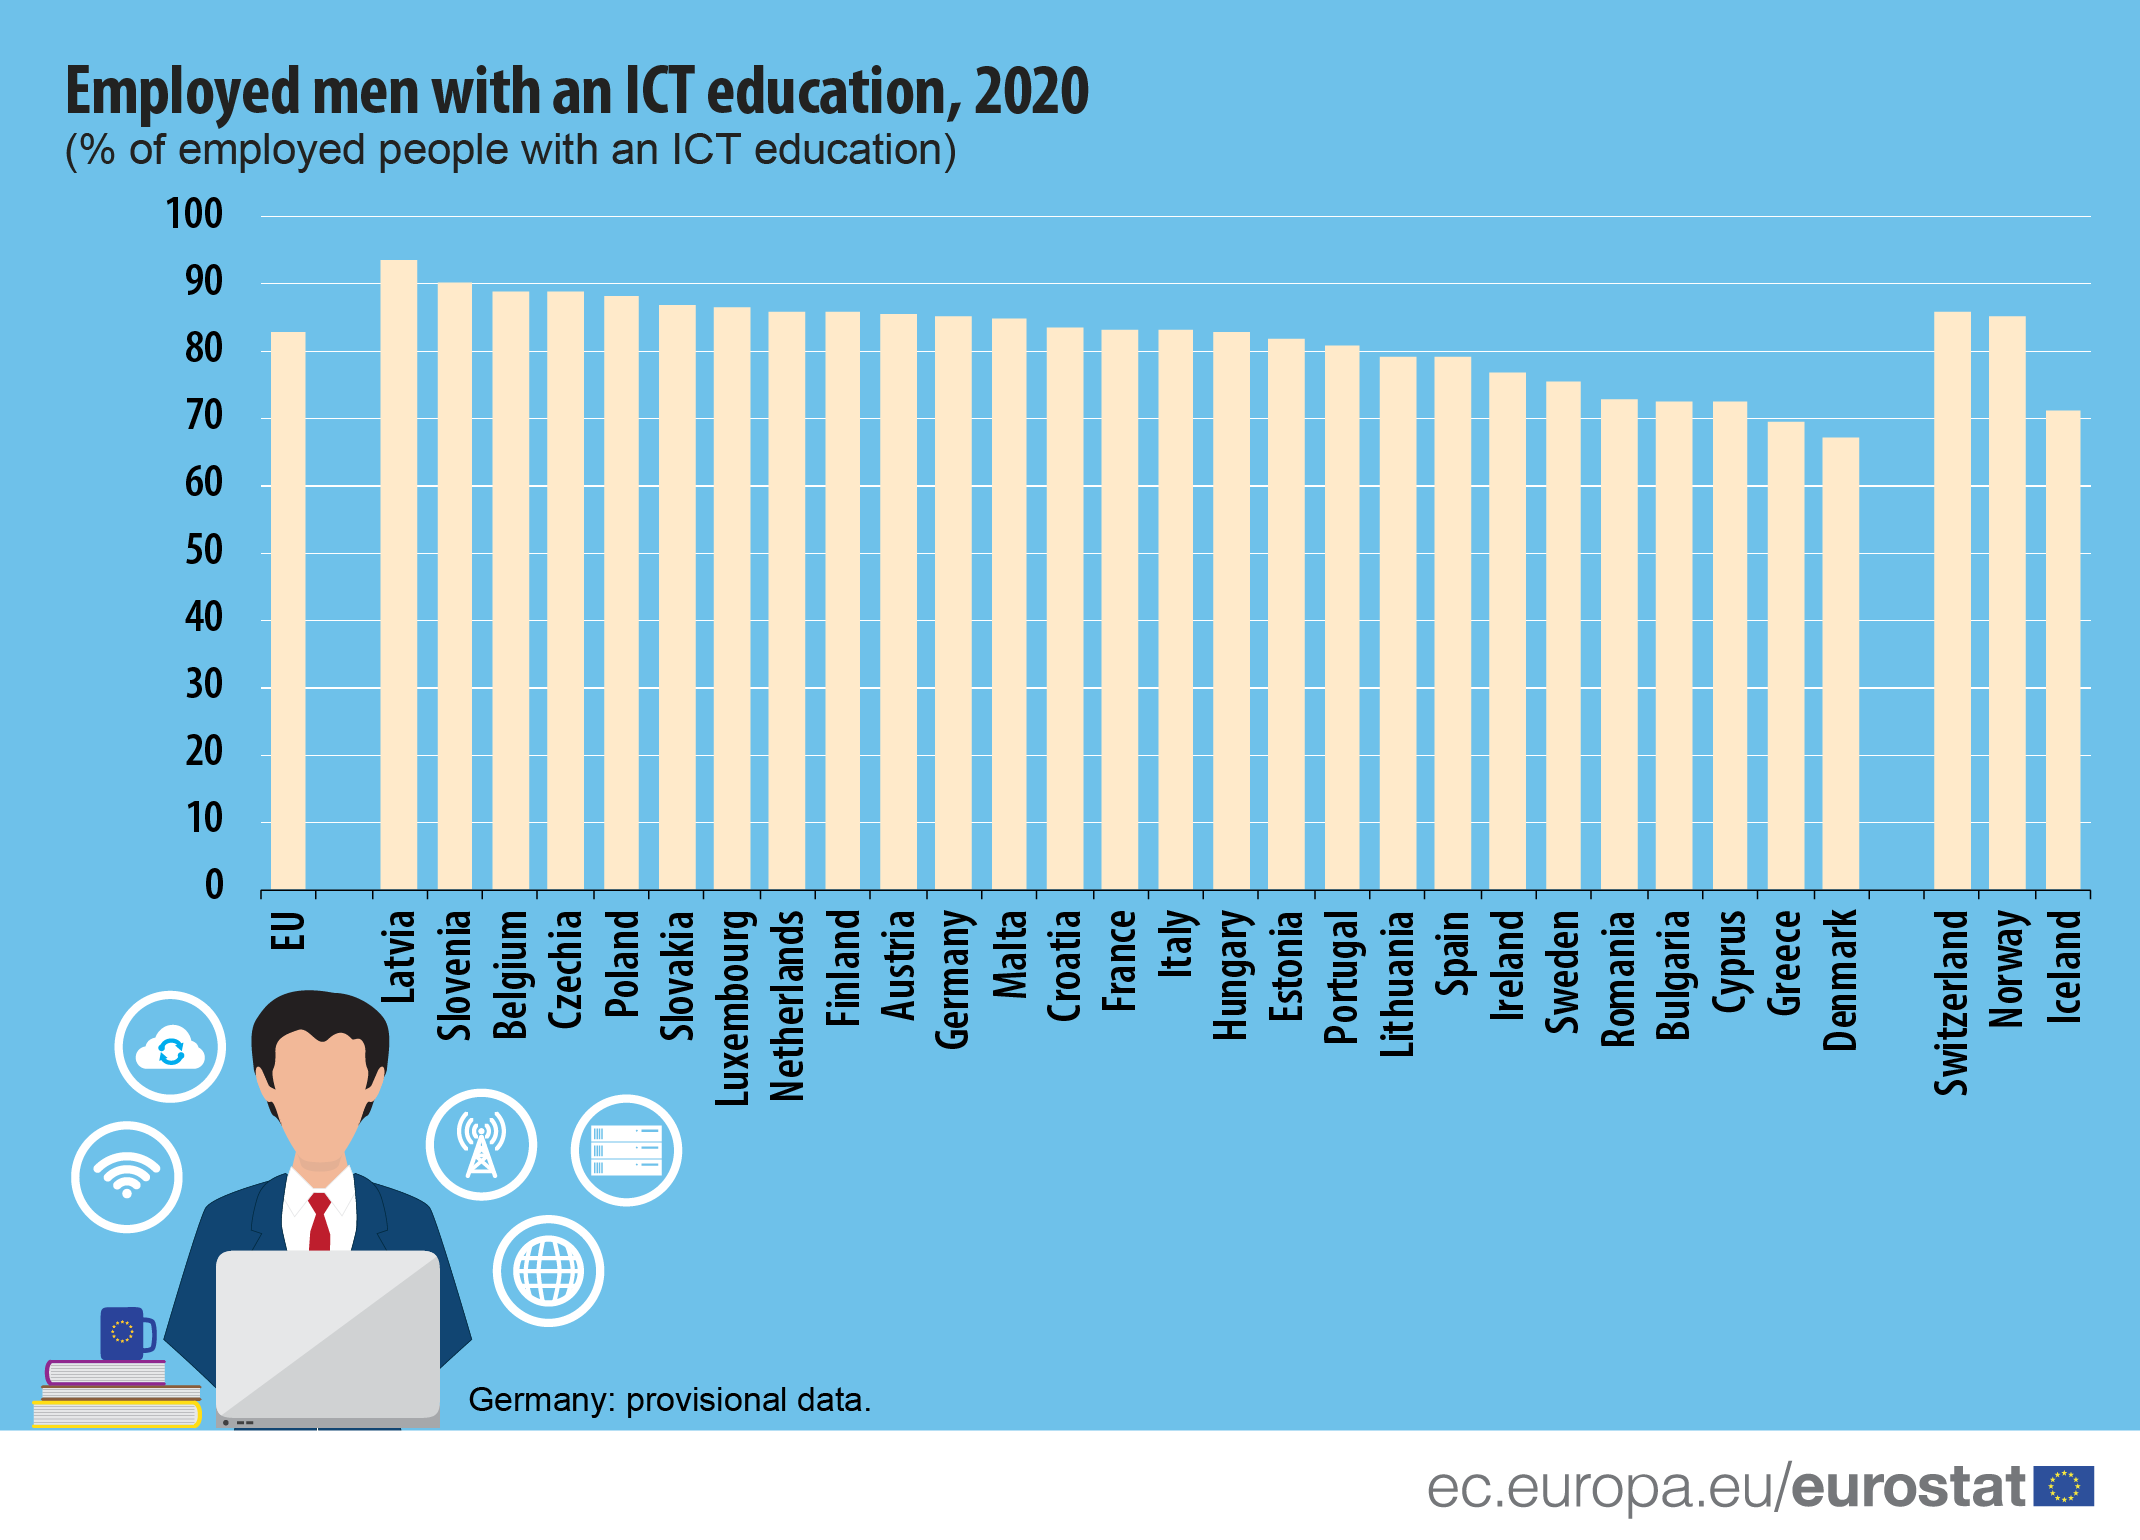 Infographic: Share of employed men with an ICT education, 2020